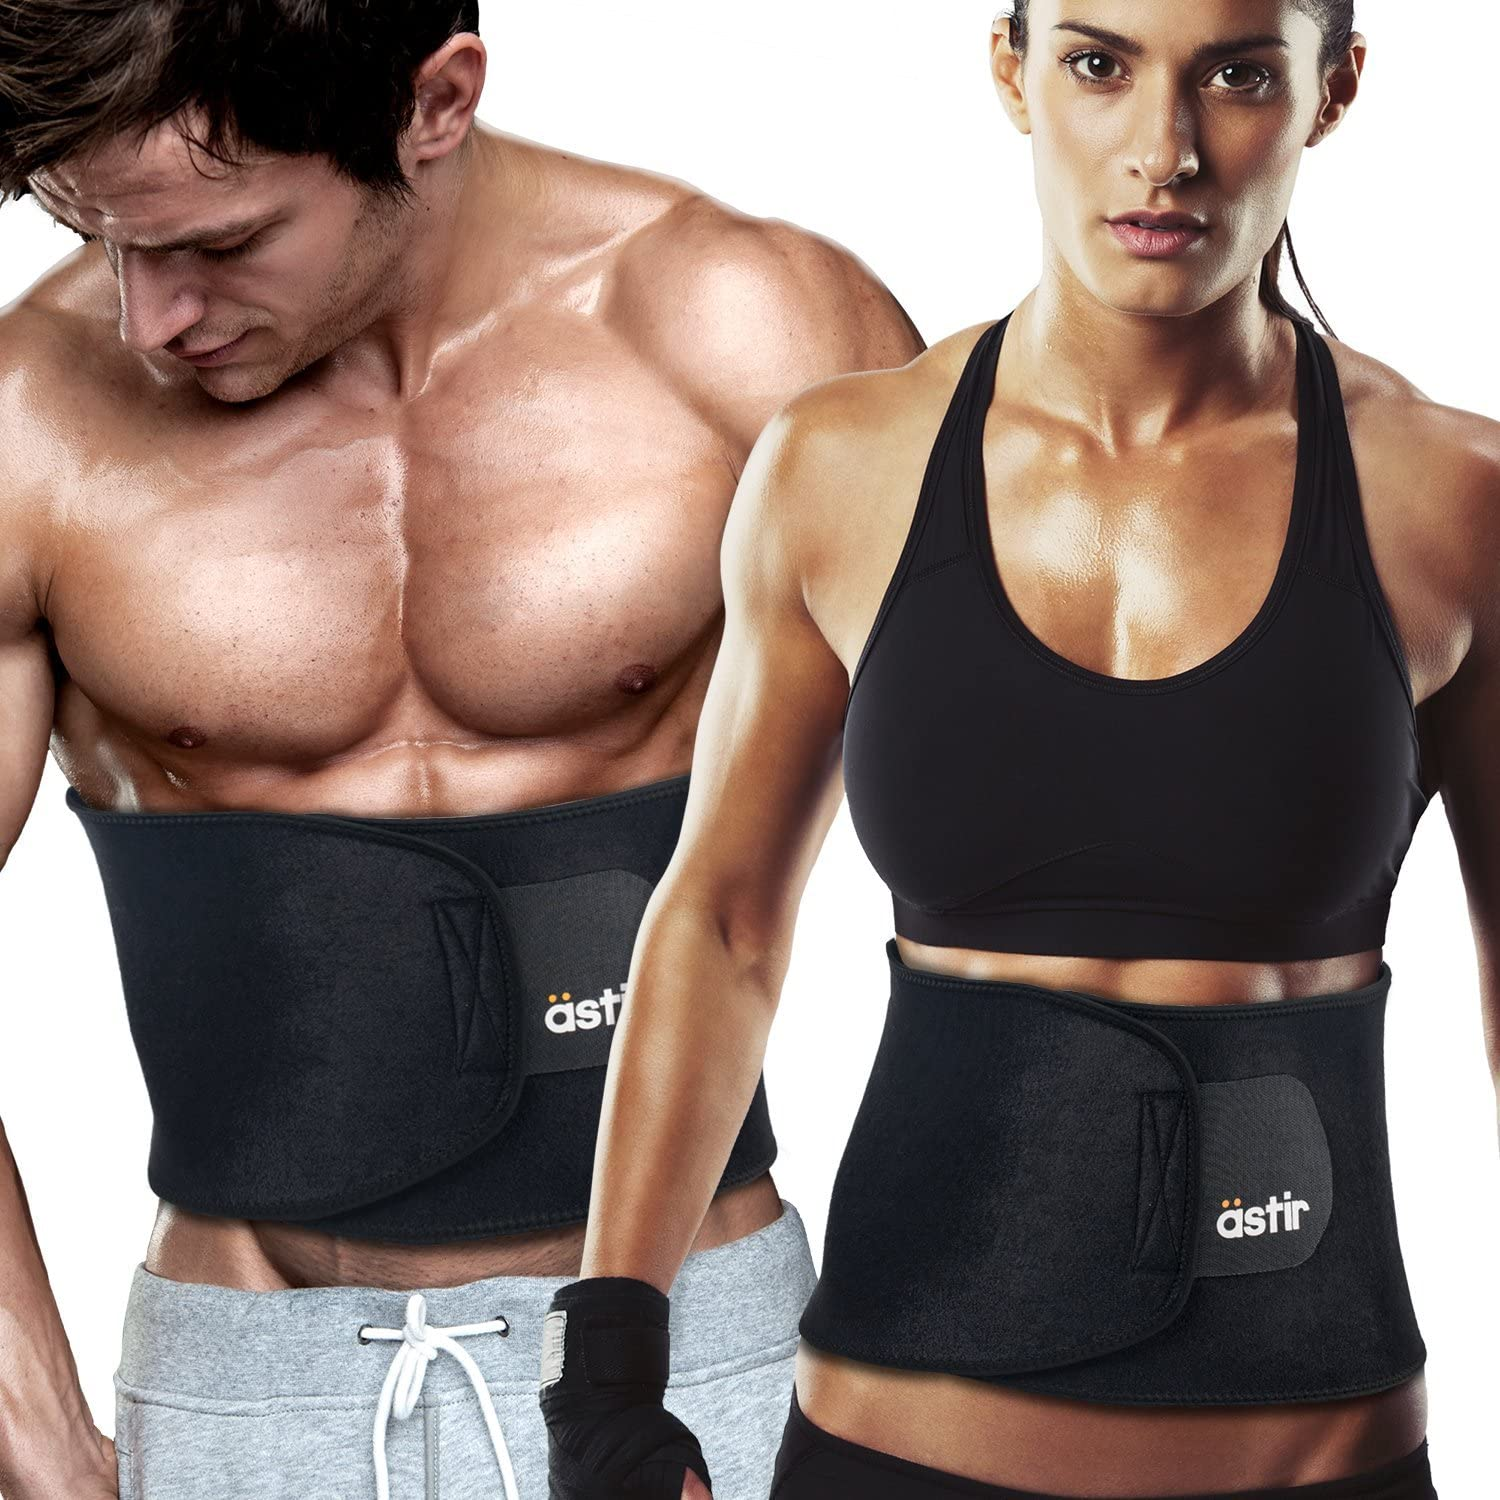 Astir Waist Trimmer Ab Belt For Women Men Extra Long 44 , Extra Wide 9 , Extra Flexible Sweat Belt with Maximum Abdominal Coverage Non-Slip Surface for Max Waist Slimming